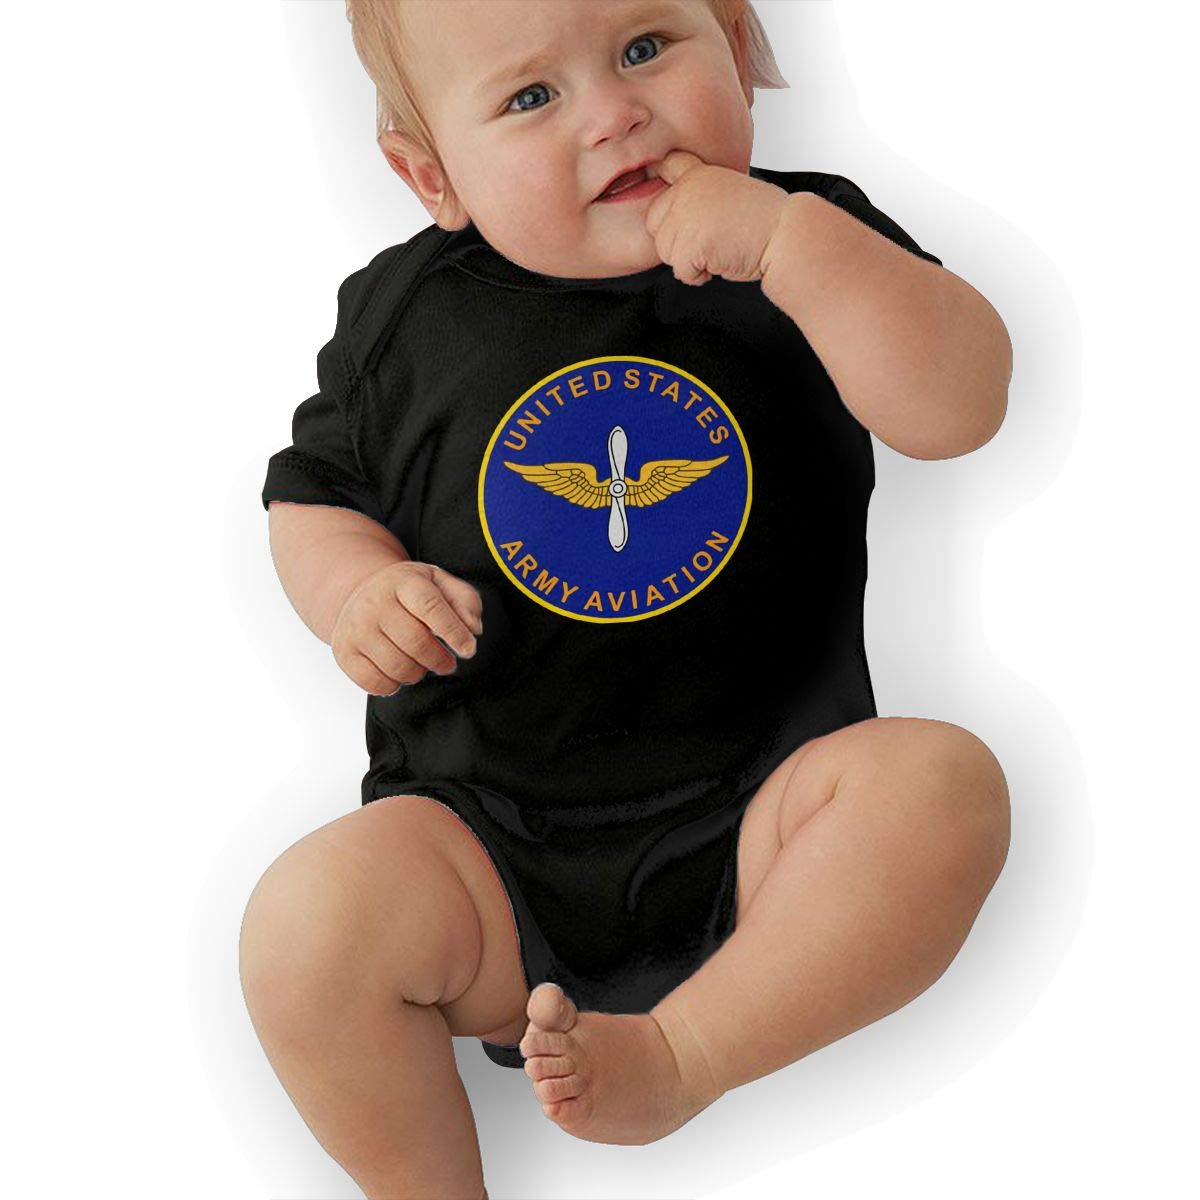 Toddler United States Army Aviation Branch Short Sleeve Climbing Clothes Pajamas Sleepwear Suit 6-24 Months Black